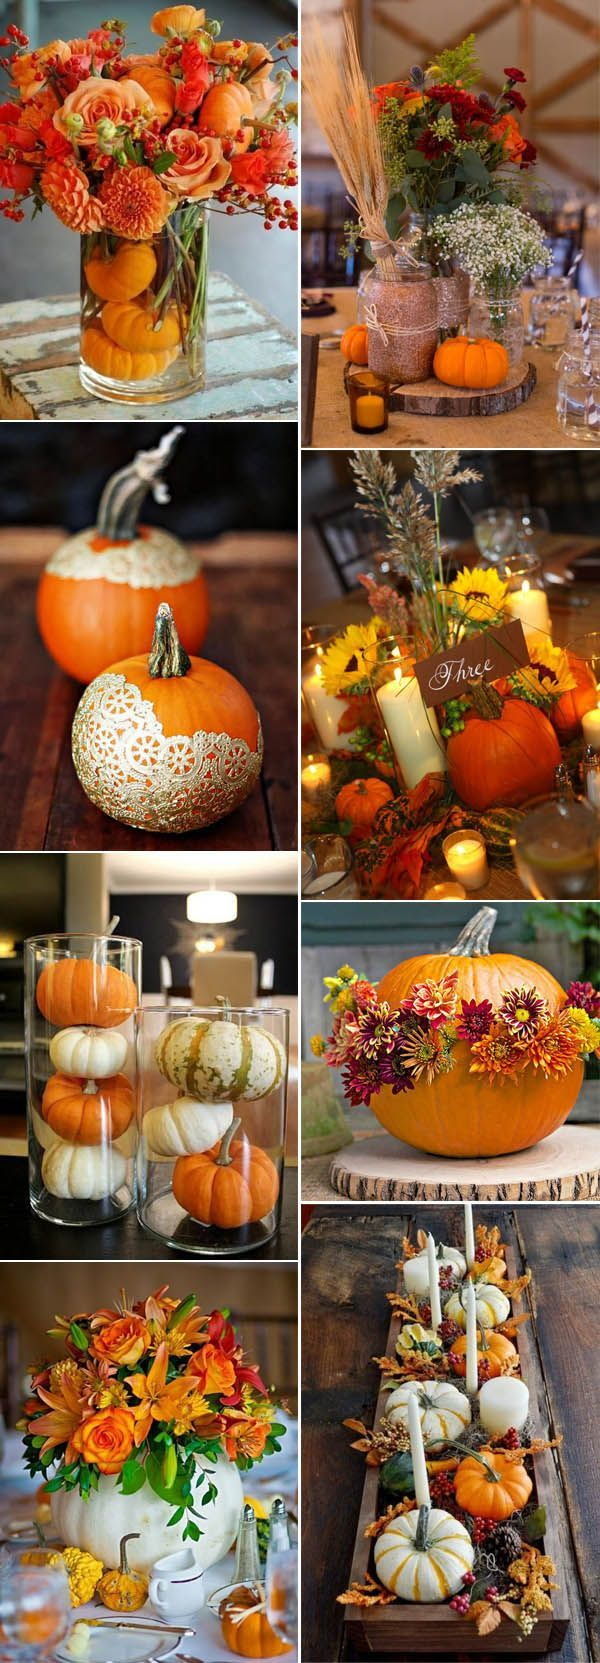 Stunning ideas!! not just for weddings!! 46 Inspirational Fall & Autumn Wedding Centerpieces Ideas